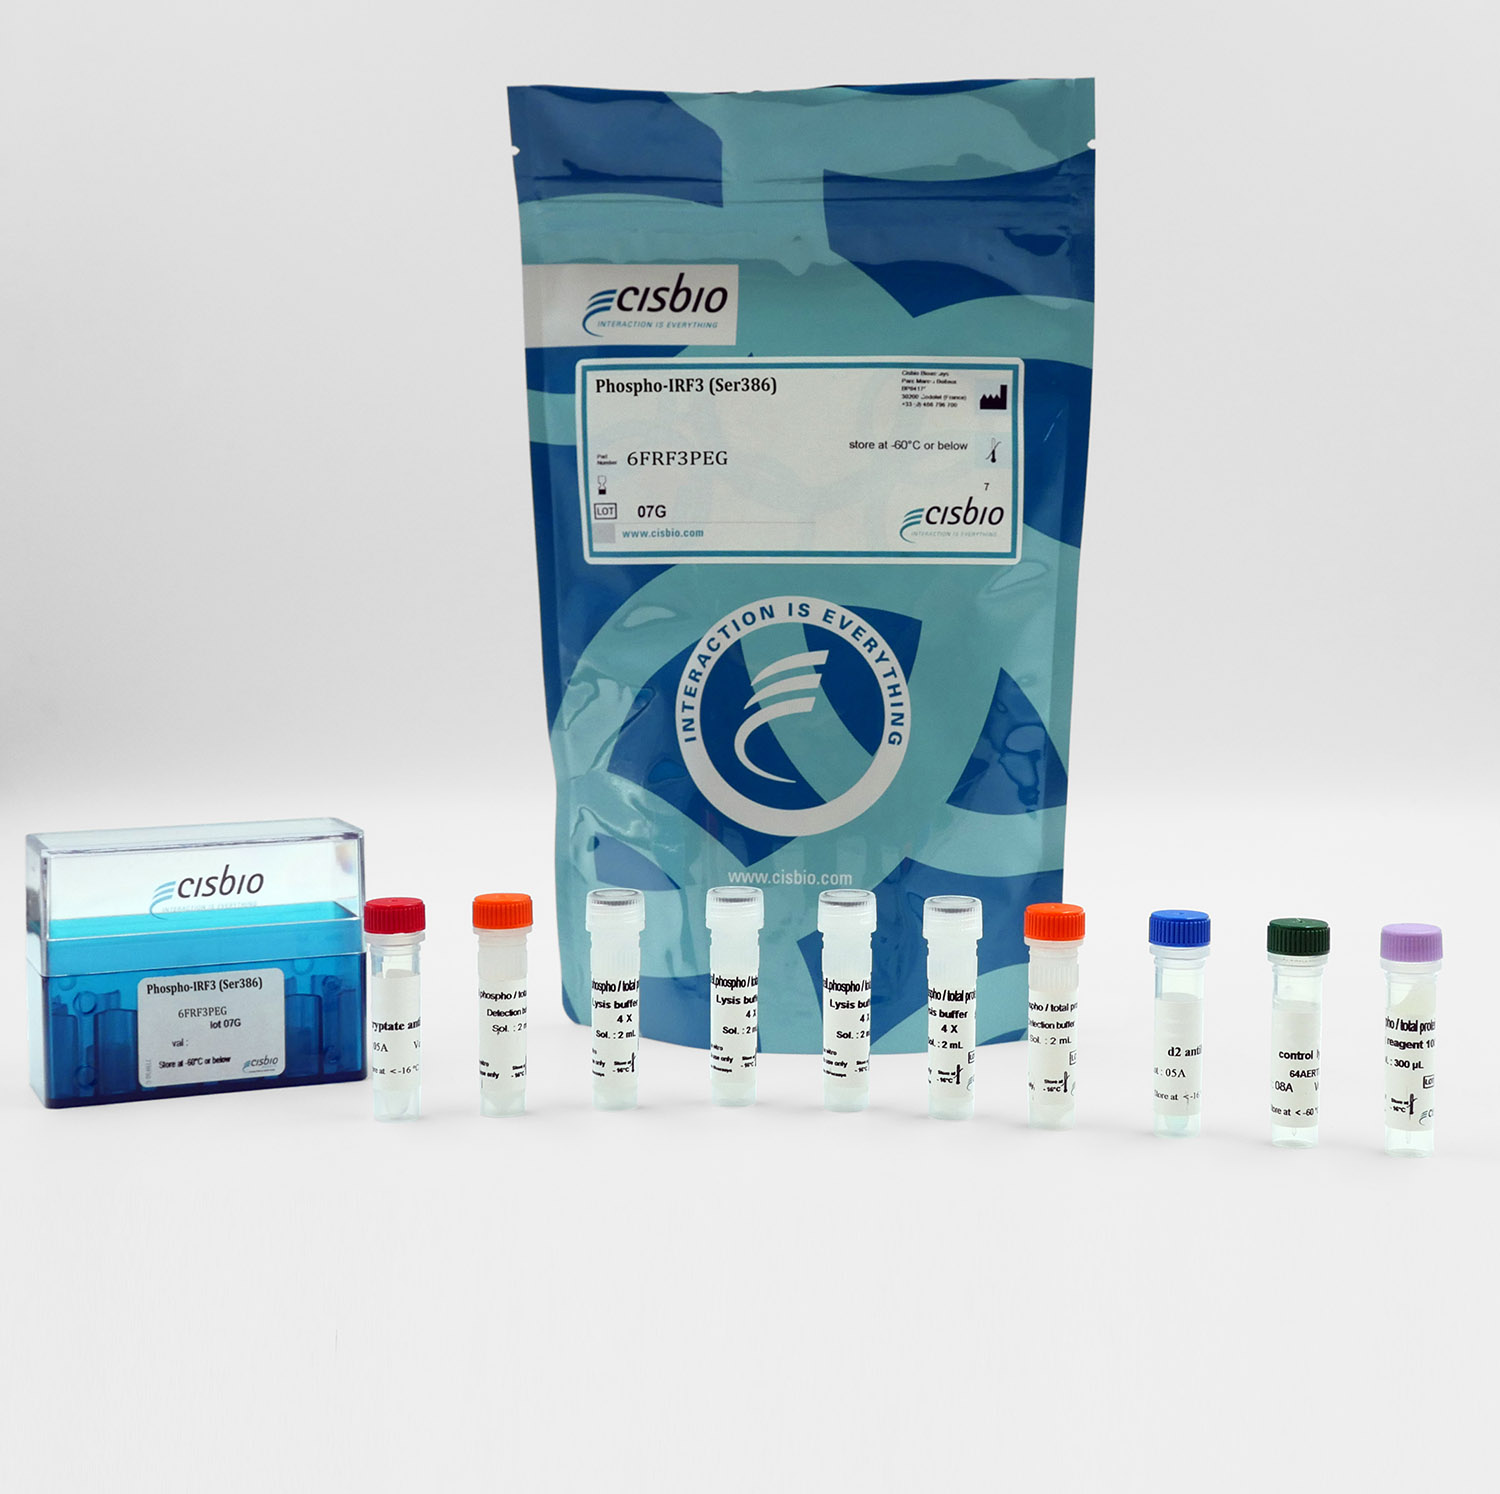 Phospho-IRF3 (Ser386) cellular kit